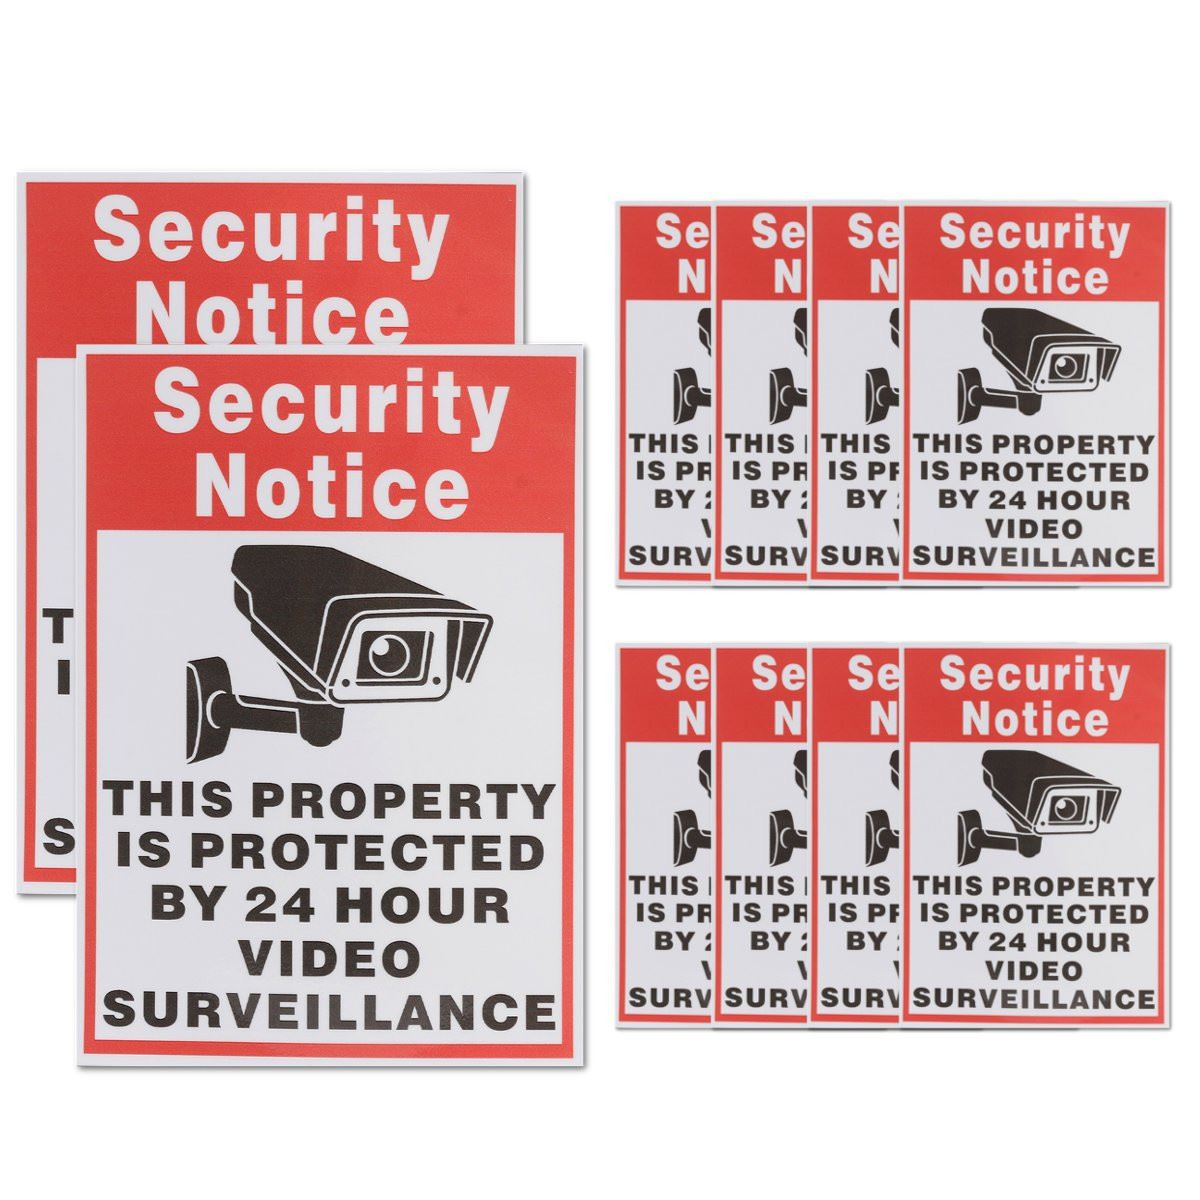 NEW 10pcs/lot Waterproof Sunscreen PVC Home CCTV Video Surveillance Security Camera Alarm Sticker Warning Decal Signs